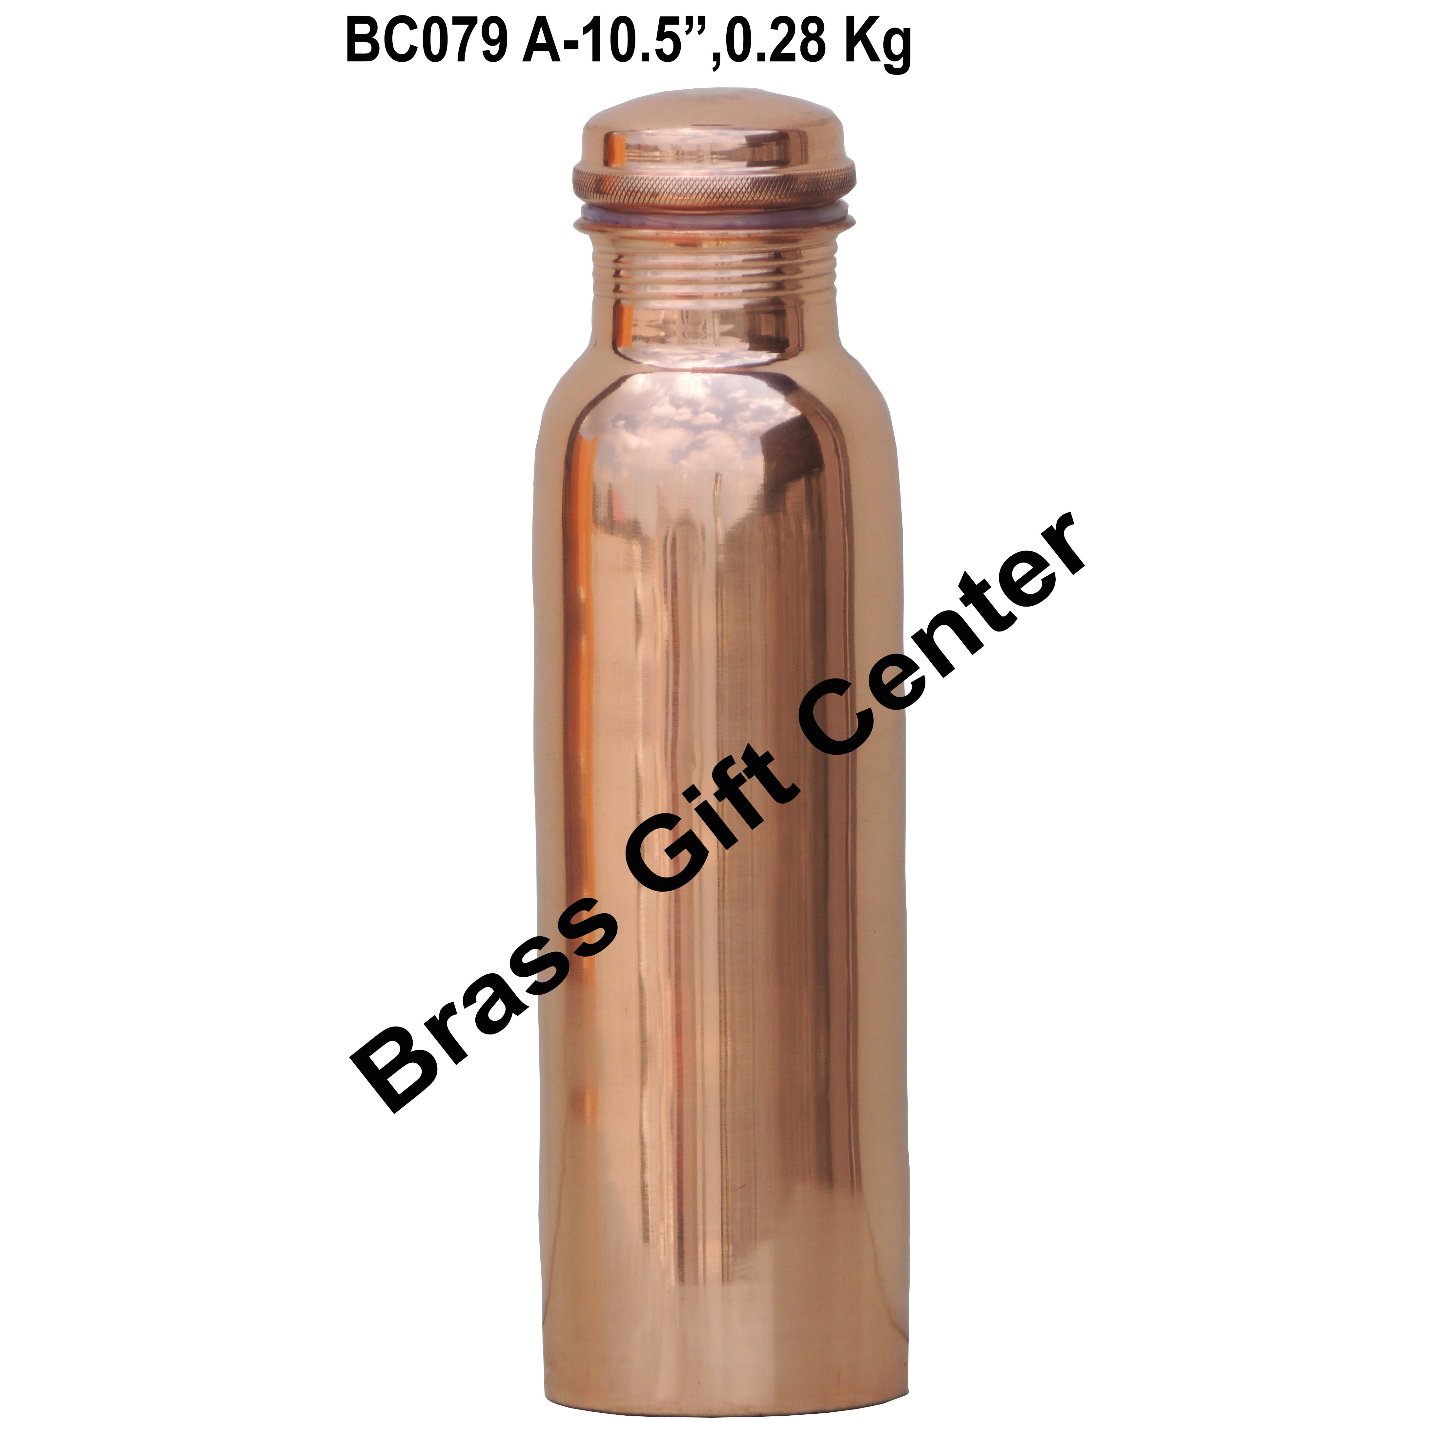 Copper Bottle Plain (BC079 A)